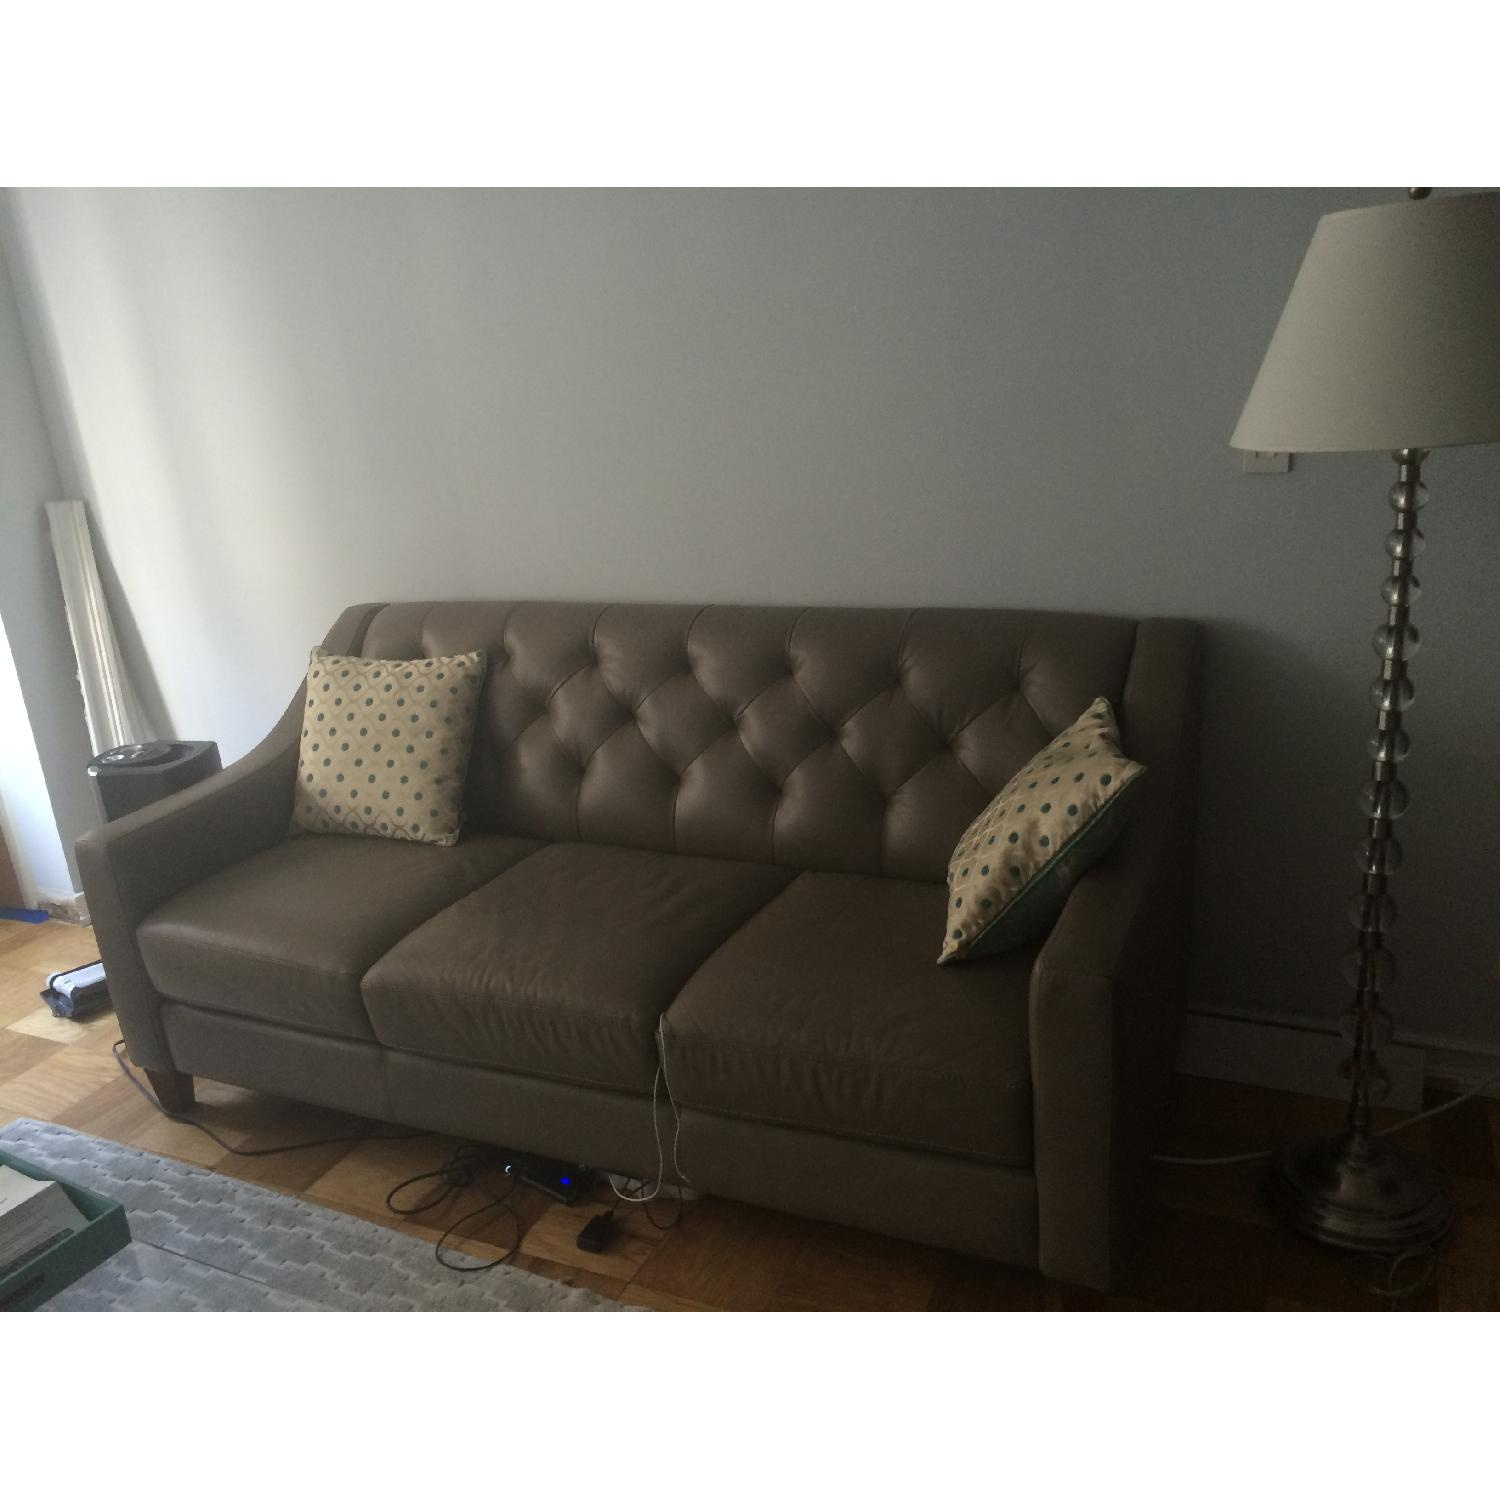 Neutral Gray Tone Leather Couch + Matching Love Seat - image-1